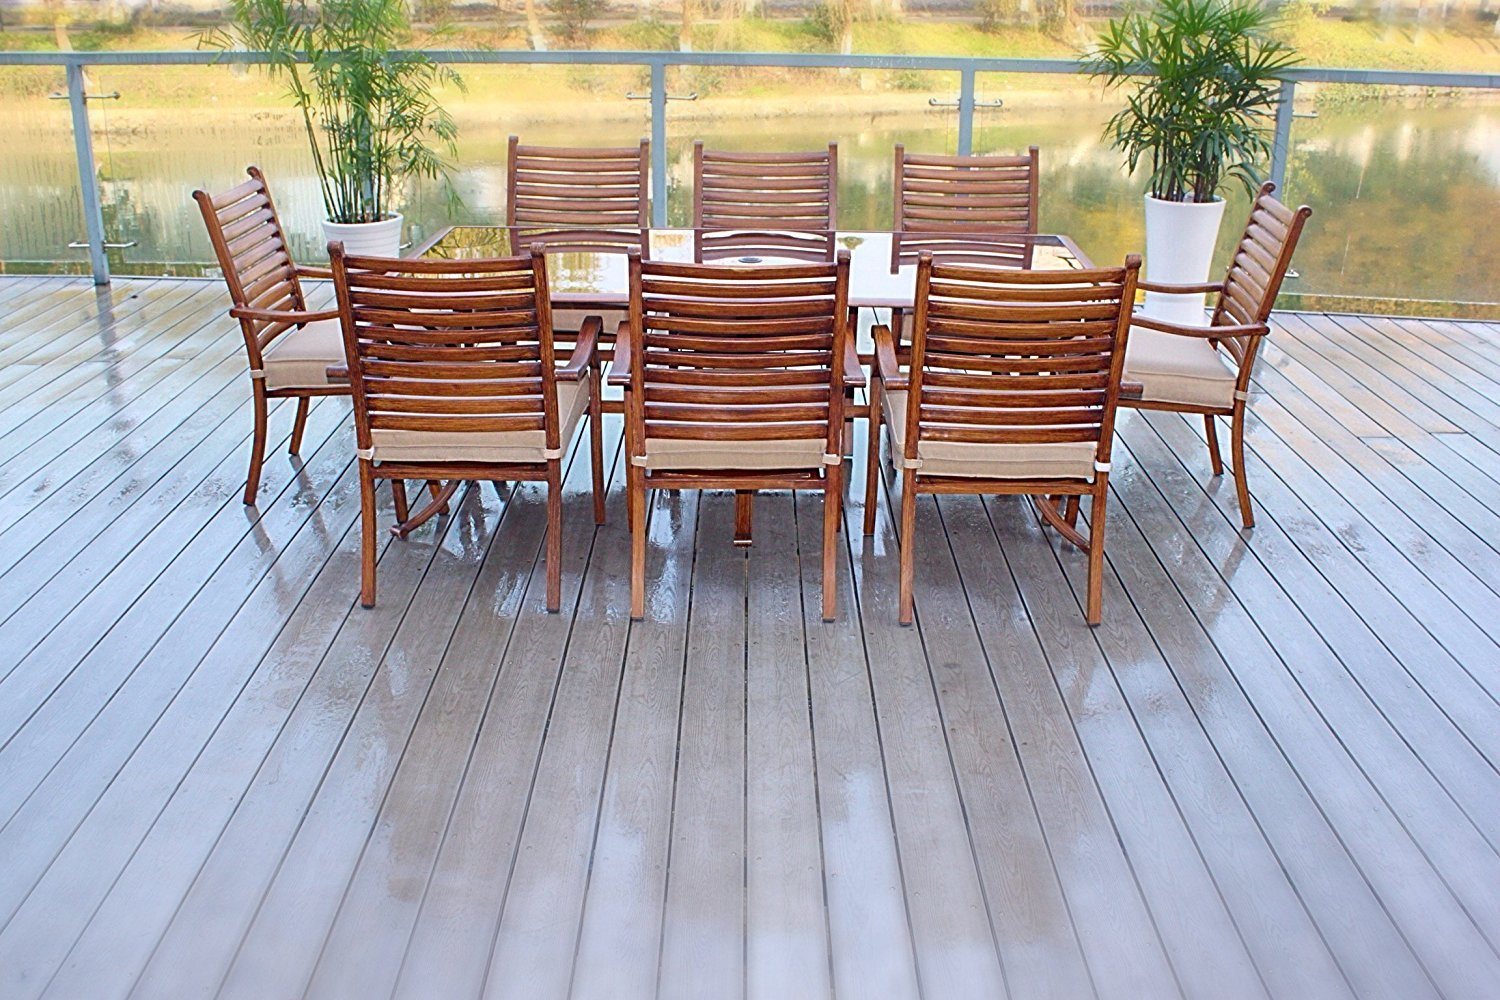 "Pebble Lane Living All Weather Rust Proof Indoor/Outdoor 9 Piece Cast Aluminum Patio Dining Set, 1 Tempered Tinted Glass Top Dining Table & 8 Dining Chairs in Premium Olfen Cushions, Wood Finish - 8 Hand Painted Aluminum Stacking Dining Chairs: 25"" W x 25"" D x 38"" H 1 Hand Painted Aluminum Patio Glass Top Dining Table with Umbrella Hole: 82"" L x 42"" W x 29"" H Outdoor All Weather Olifen Cushions with UV and Mold Treatment - patio-furniture, dining-sets-patio-funiture, patio - 81jdfMf3X8L -"